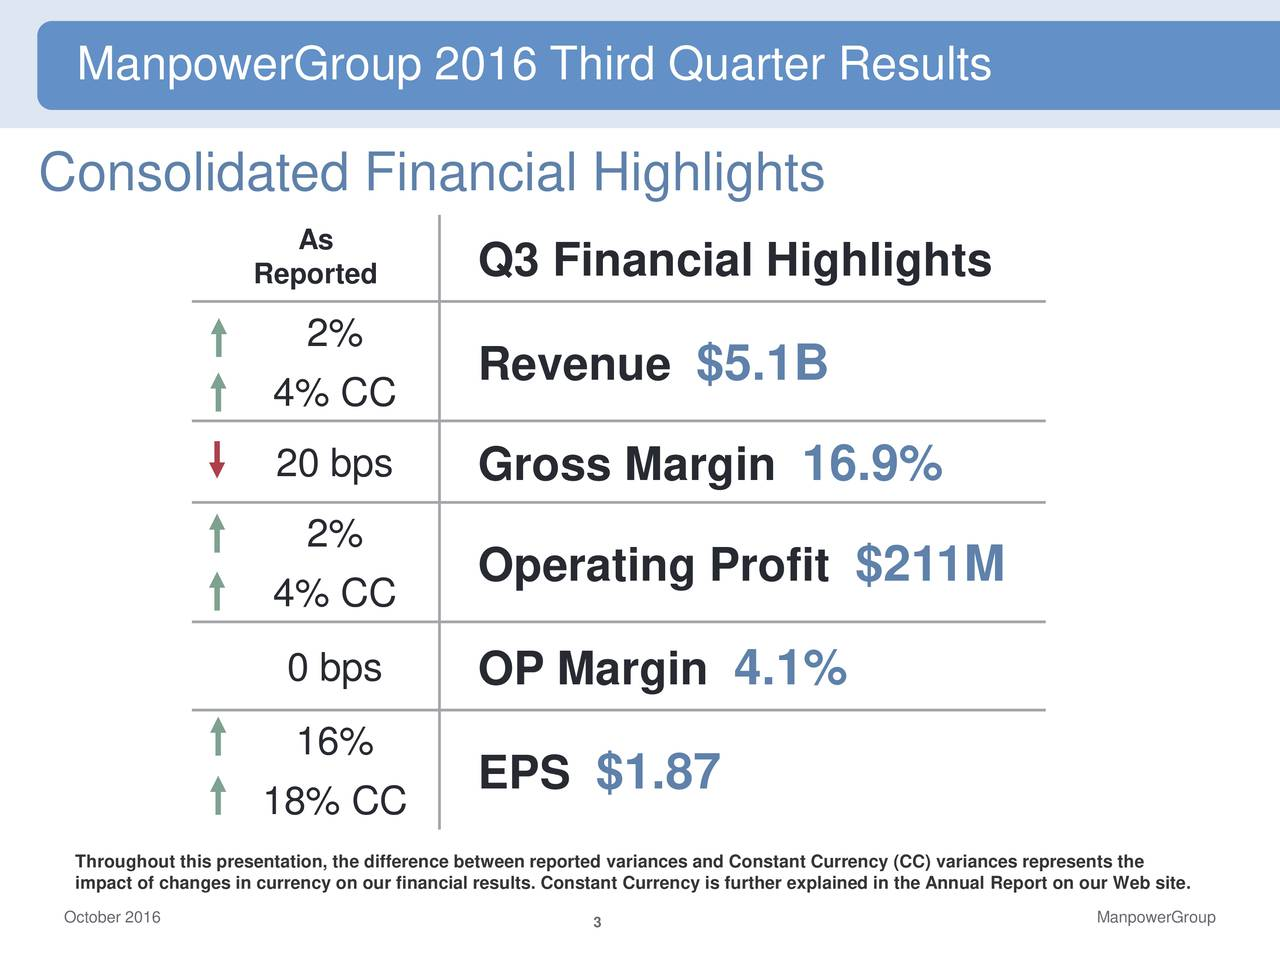 Consolidated Financial Highlights As Reported Q3 Financial Highlights 2% Revenue $5.1B 4% CC 20 bps Gross Margin 16.9% 2% Operating Profit $211M 4% CC 0 bps OP Margin 4.1% 16% 18% CC EPS $1.87 impact of changes in currency on our financial results. Constant Currency is further explained in the Annual Report on our Web site . October 2016 3 ManpowerGroup